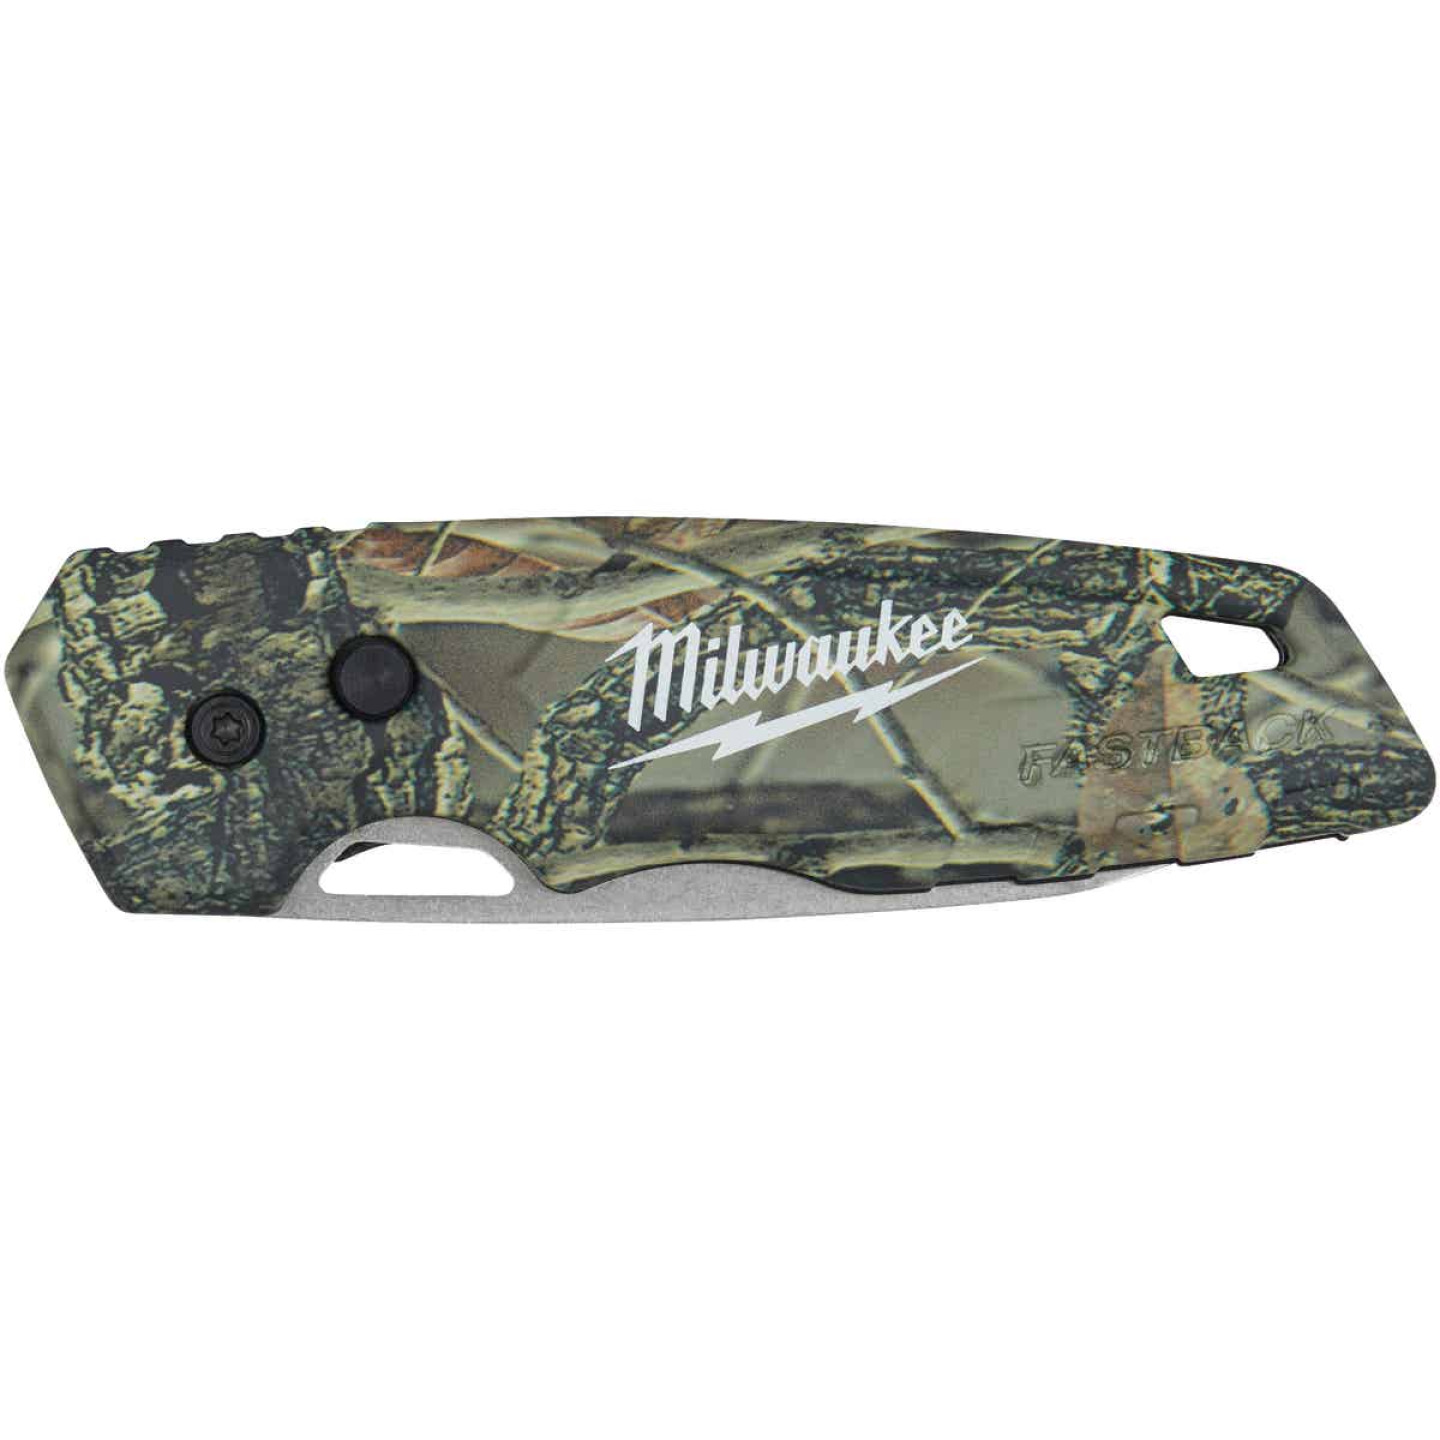 Milwaukee FASTBACK 2.95 In. Camo Folding Knife Image 2